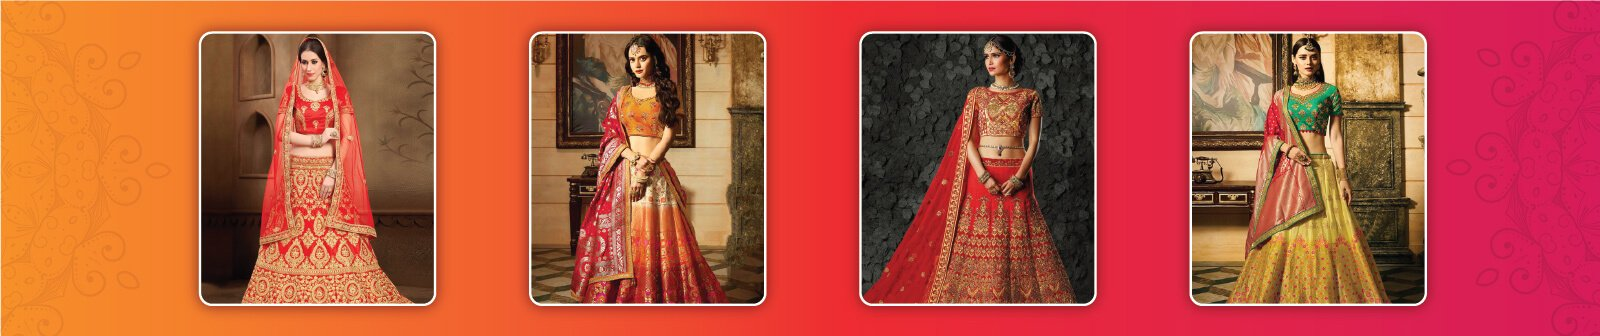 Best Bridal Wear Showrooms in Patna